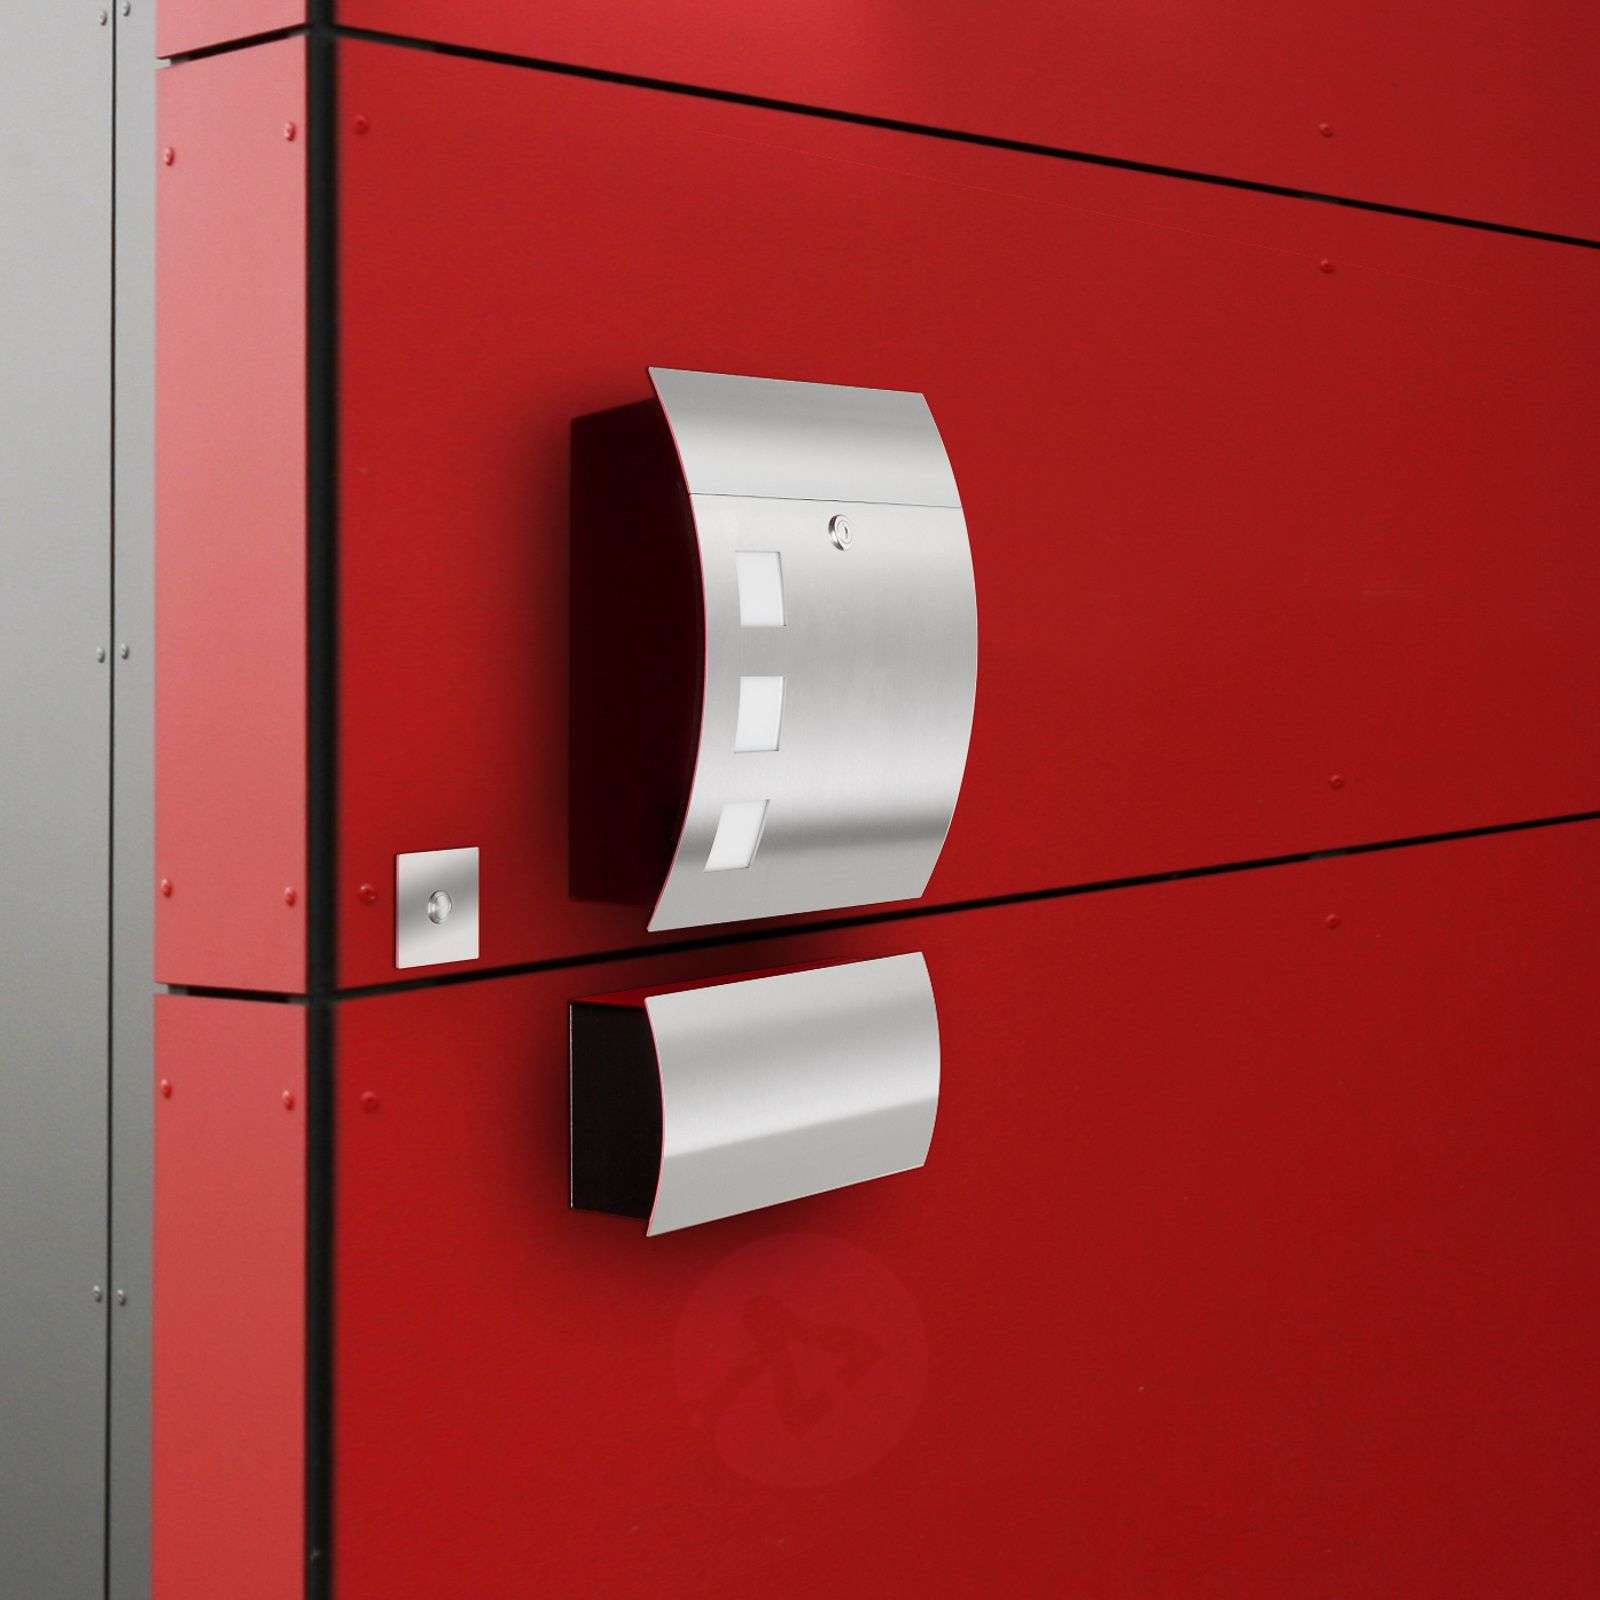 Alani High-quality Letterbox with Stainless Steel-2011001-01